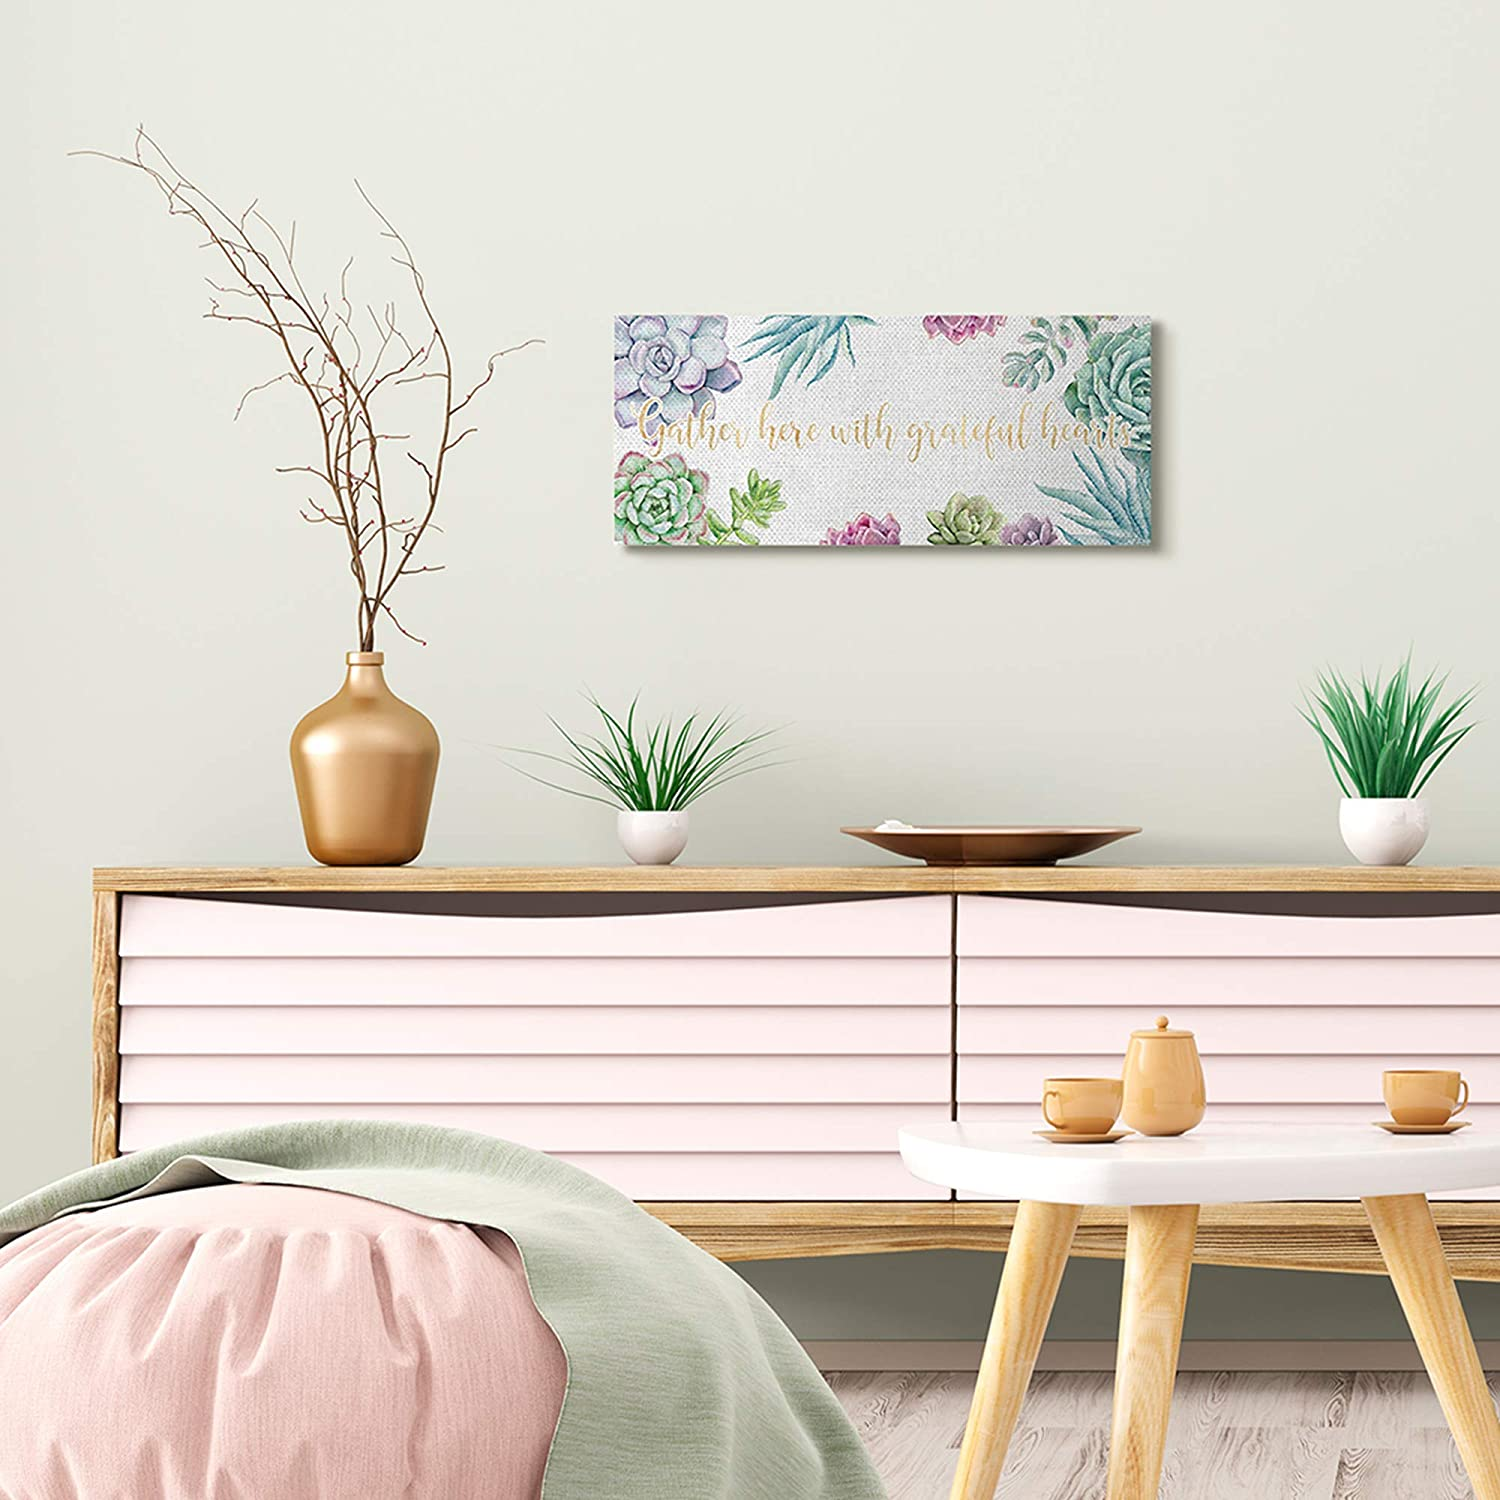 Off-White Designed by Ziwei Li Canvas Wall Art 10 x 24 Stupell Industries Gather Here Grateful Hearts Phrase Blooming Succulents